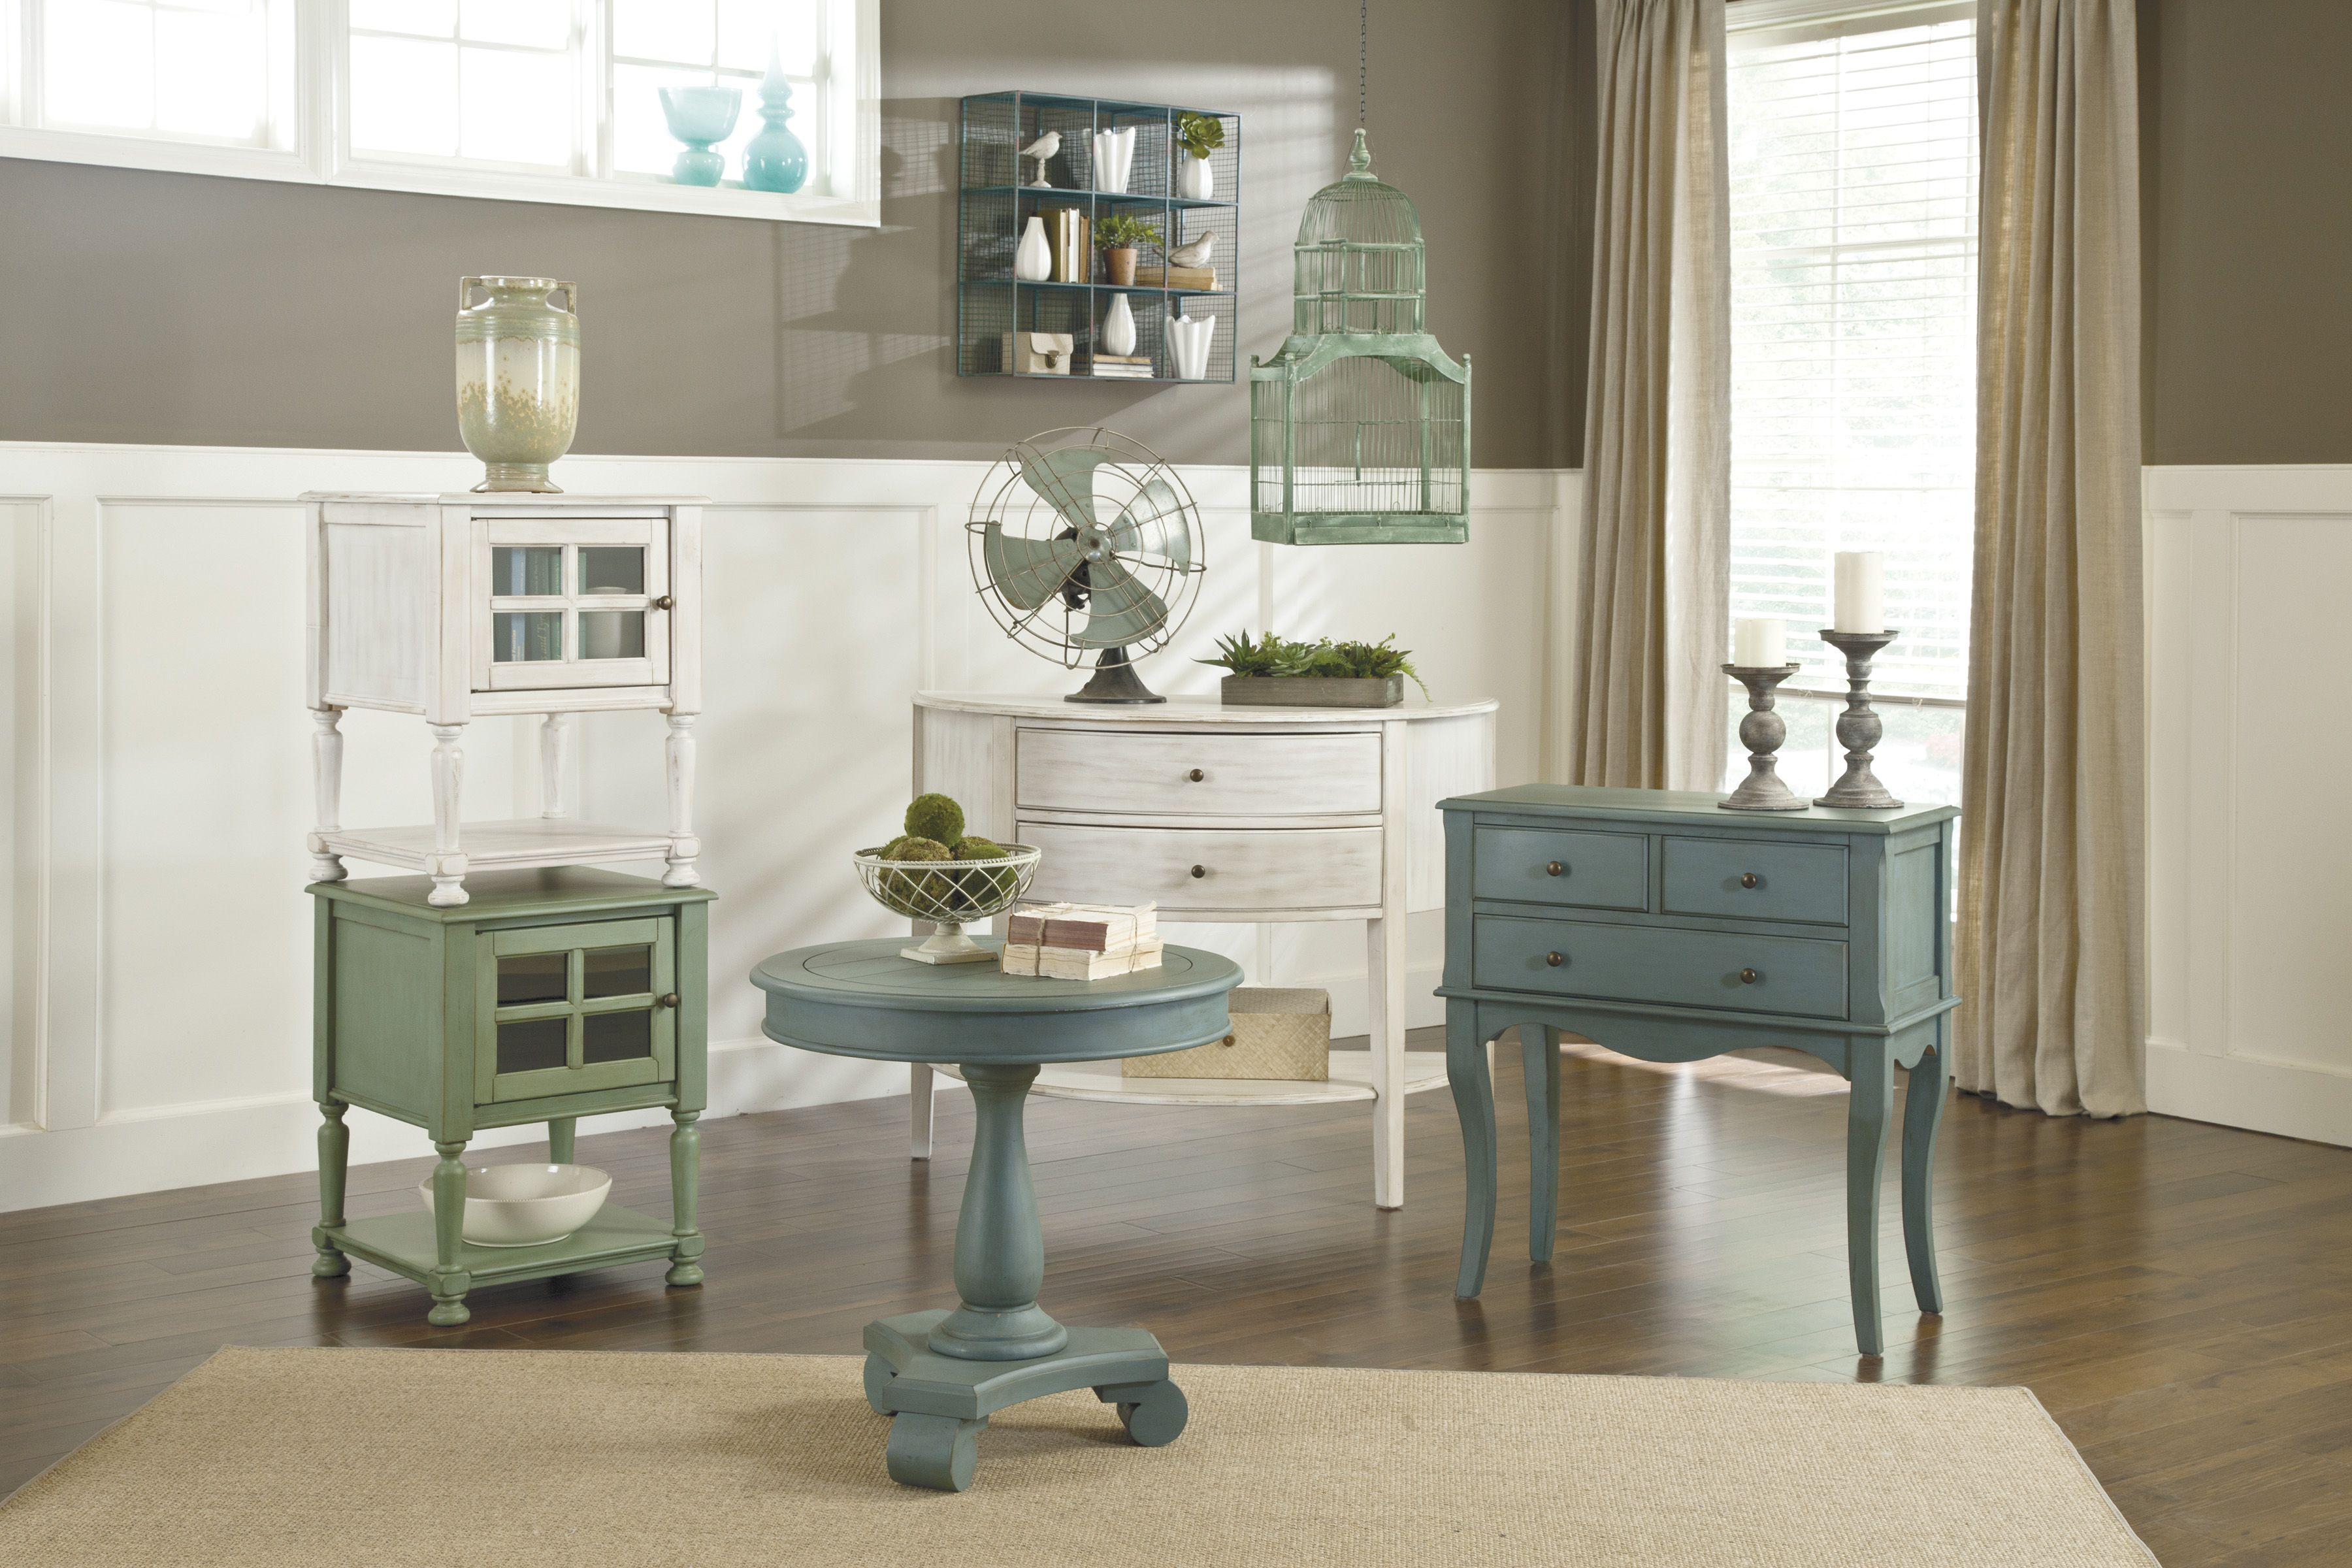 Rustic painted storage cabinets and small tables perfect for